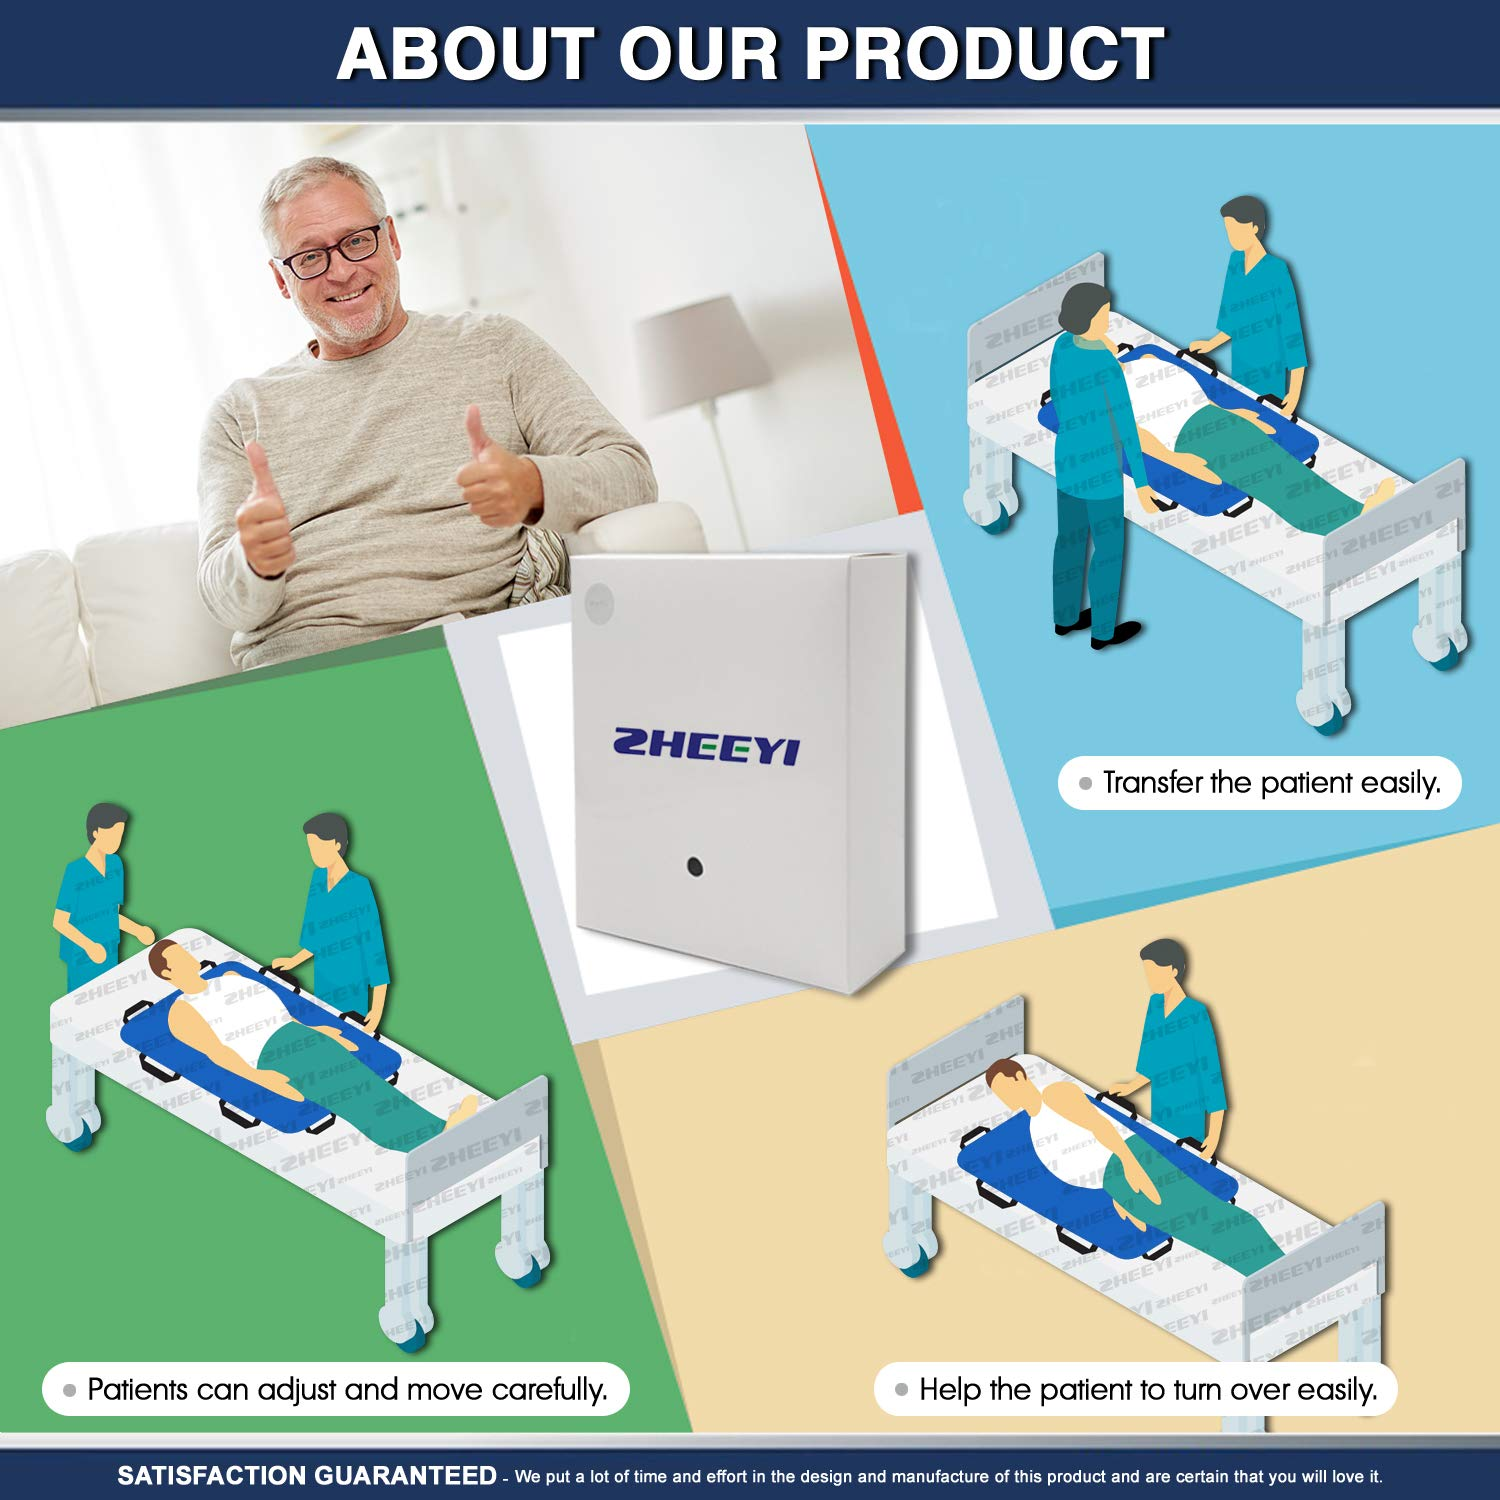 """Multipurpose 48"""" x 40"""" Positioning Bed Pad with Reinforced Handles by ZHEEYI - Reusable & Washable Patient Sheet for Turning, Lifting & Repositioning - Double-Sided Nylon Fabric, Blue by ZHEEYI (Image #3)"""